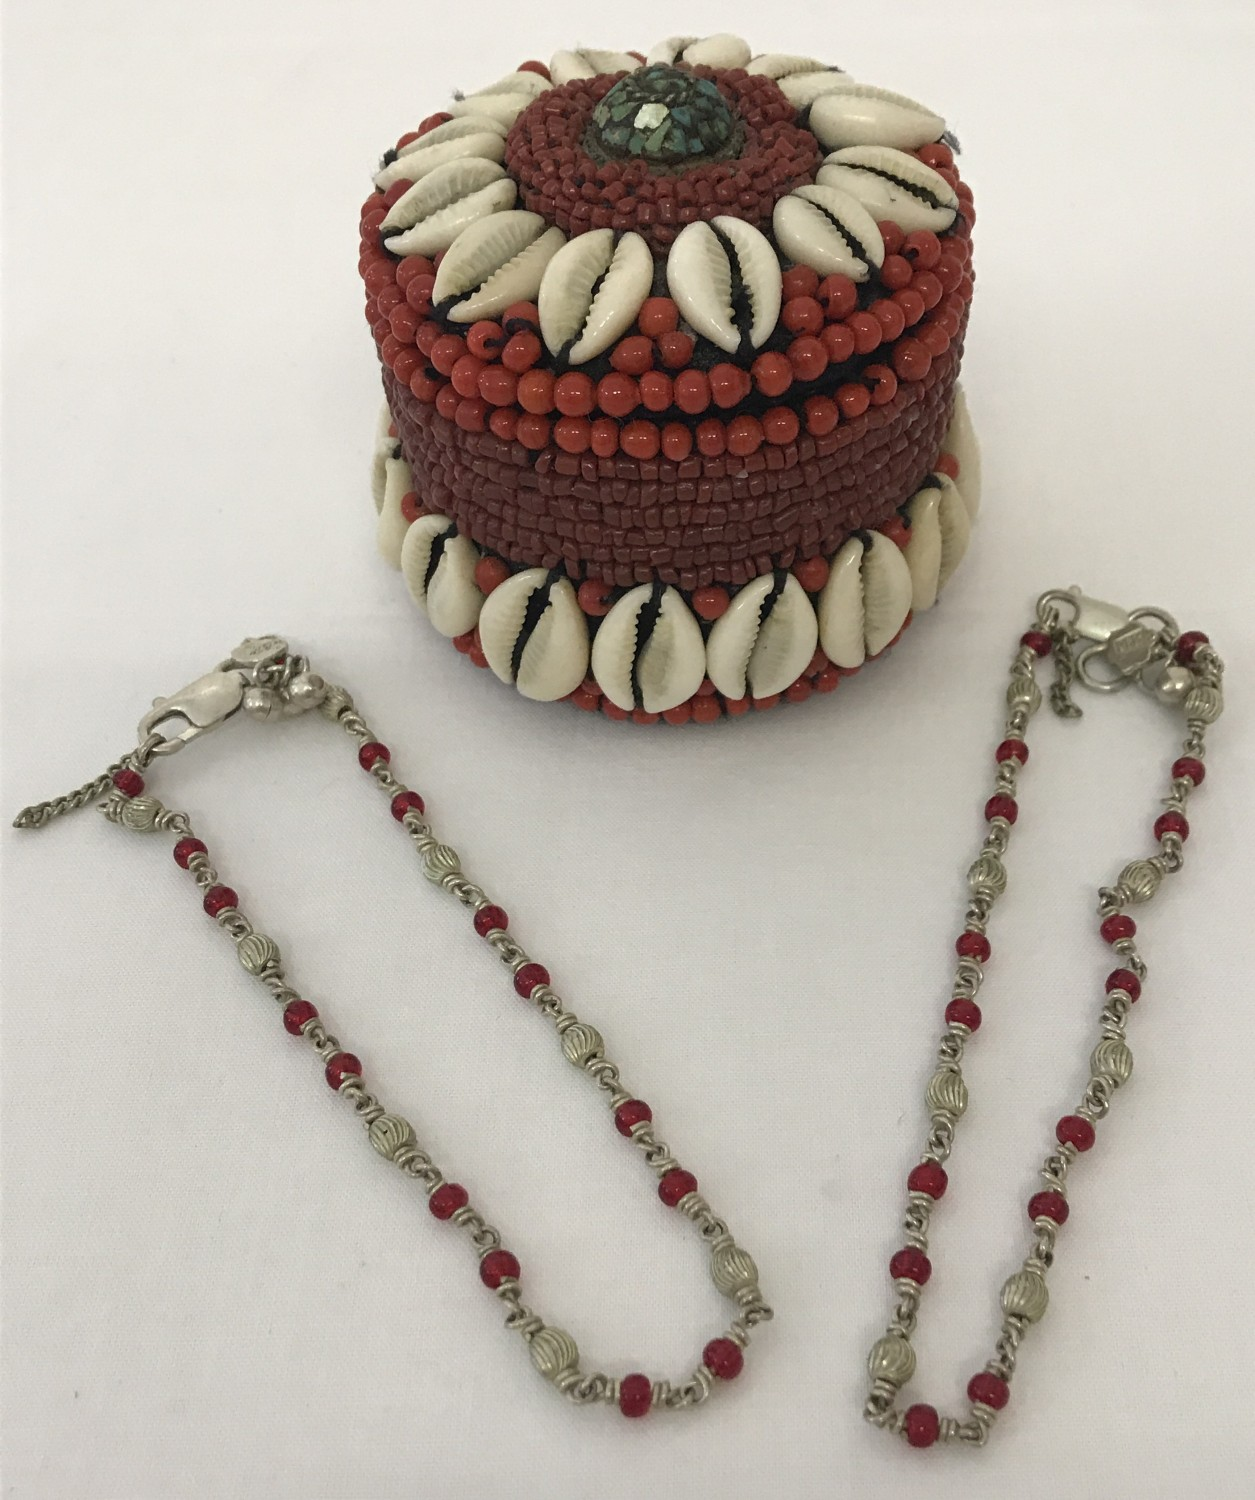 2 Indian white metal and red glass bead decorative ankle chains, both with makers marks.